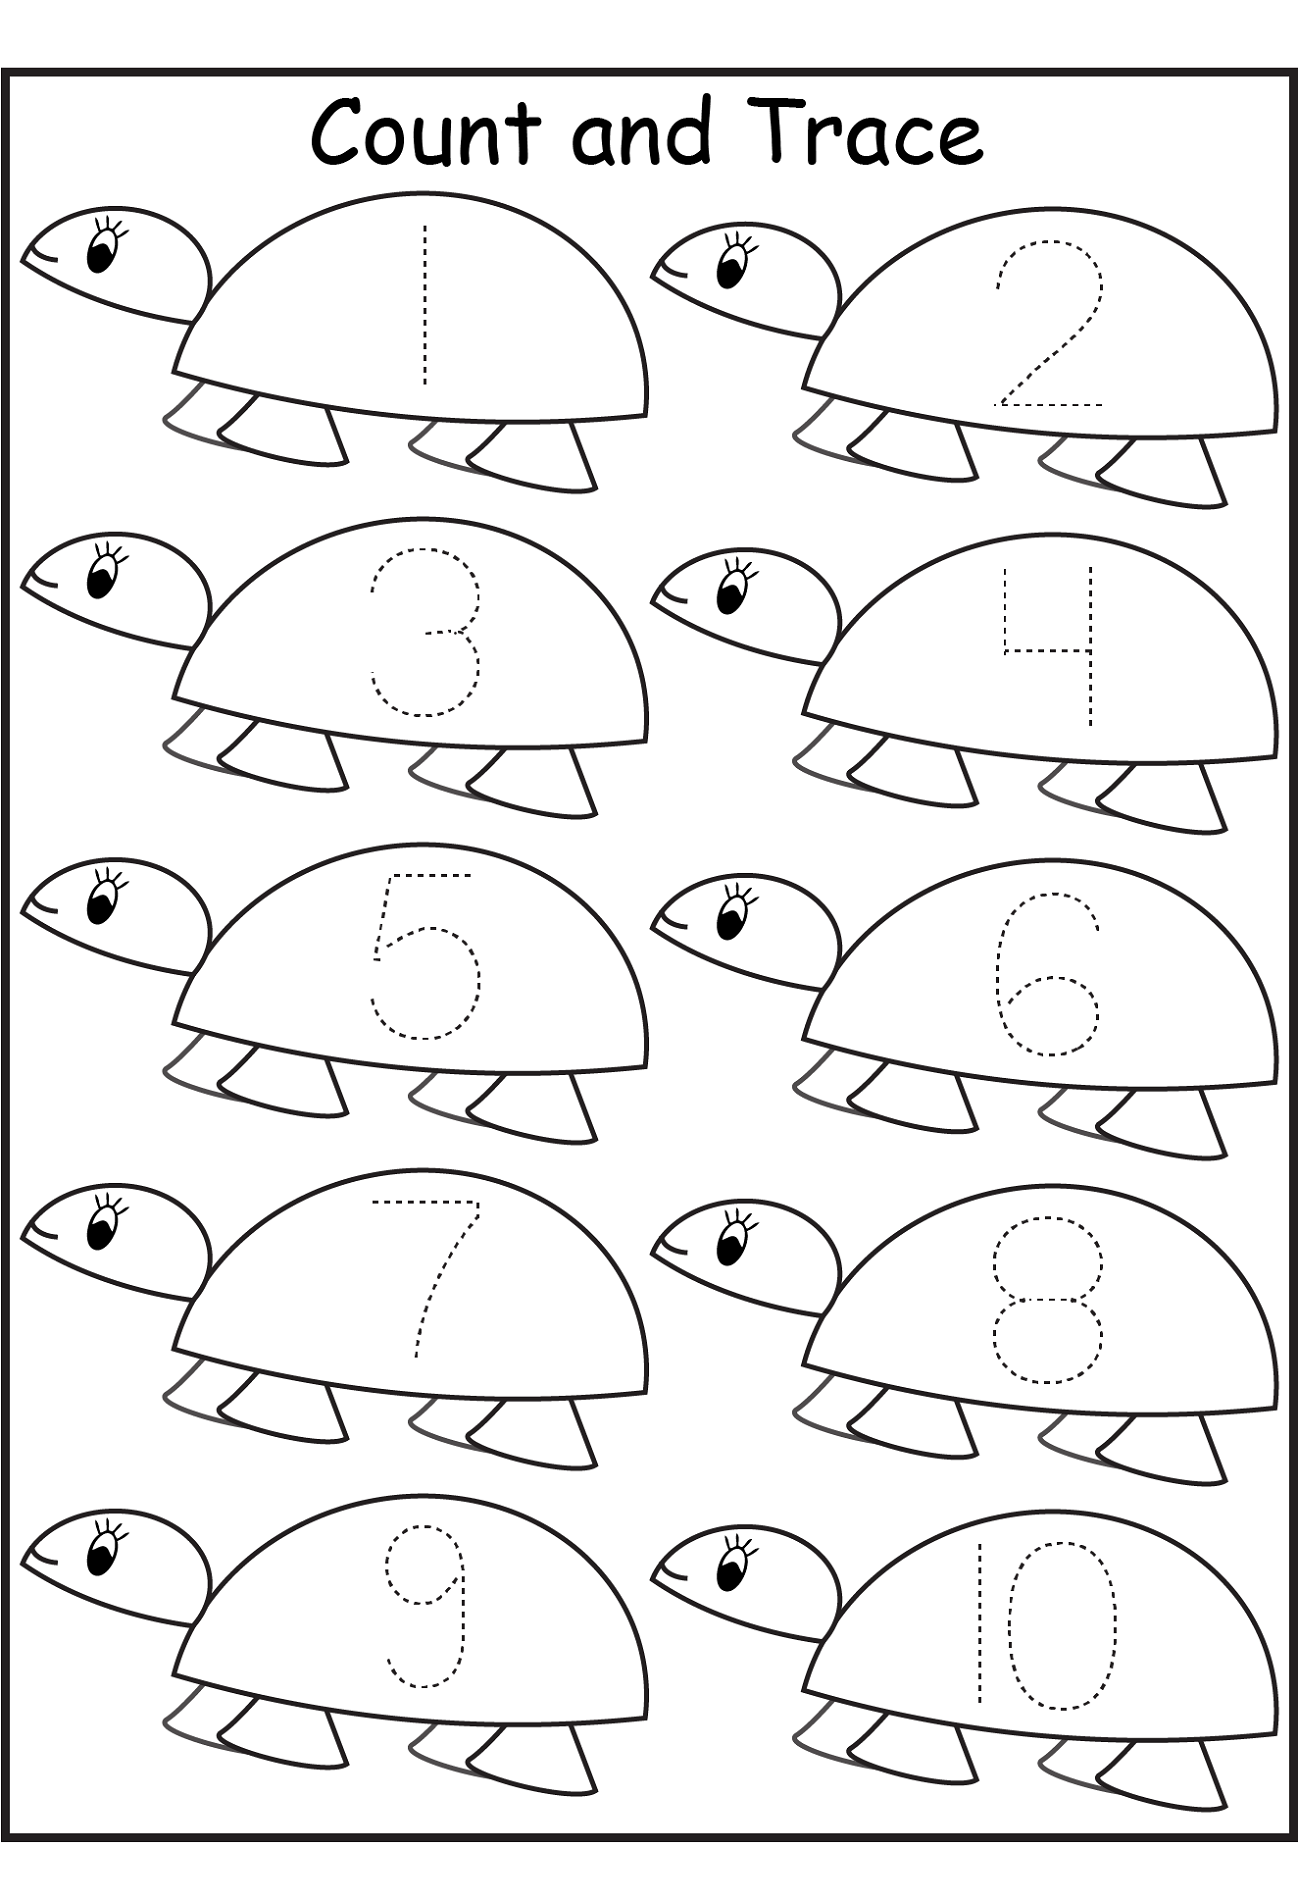 Free Preschool Printable Activity | Activity Shelter